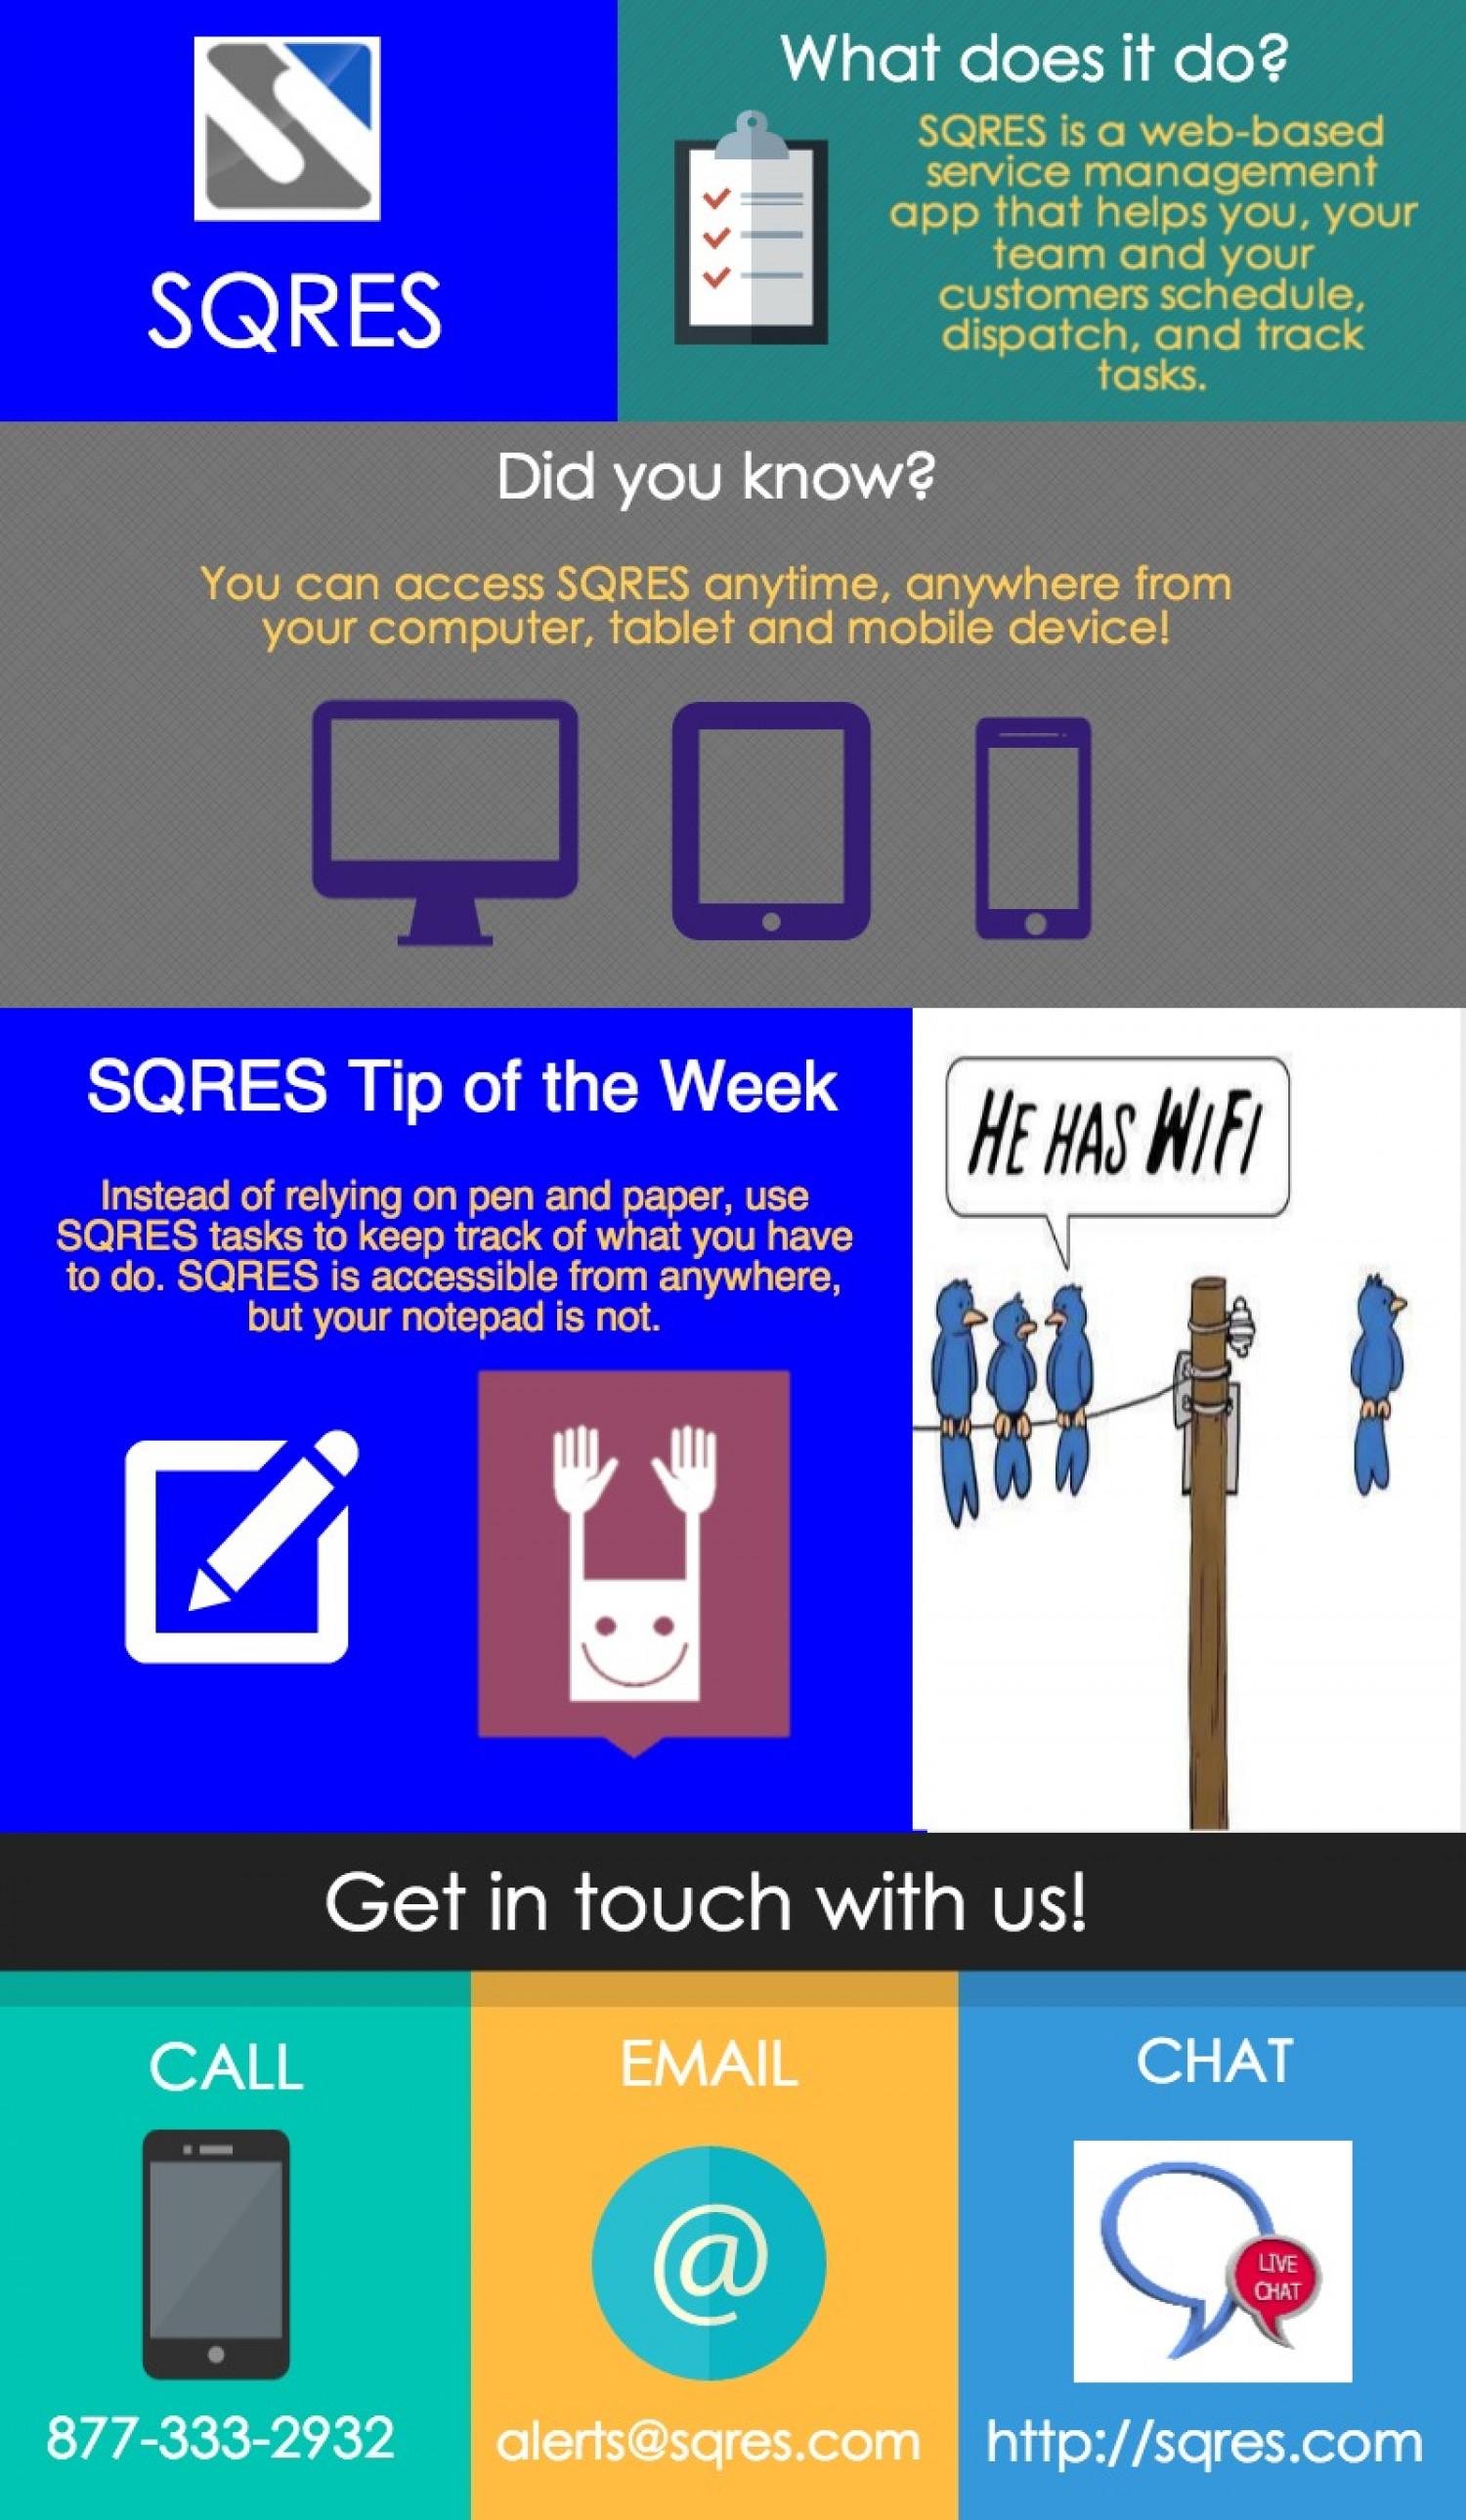 Web Based Service Management App - SQRES Infographic